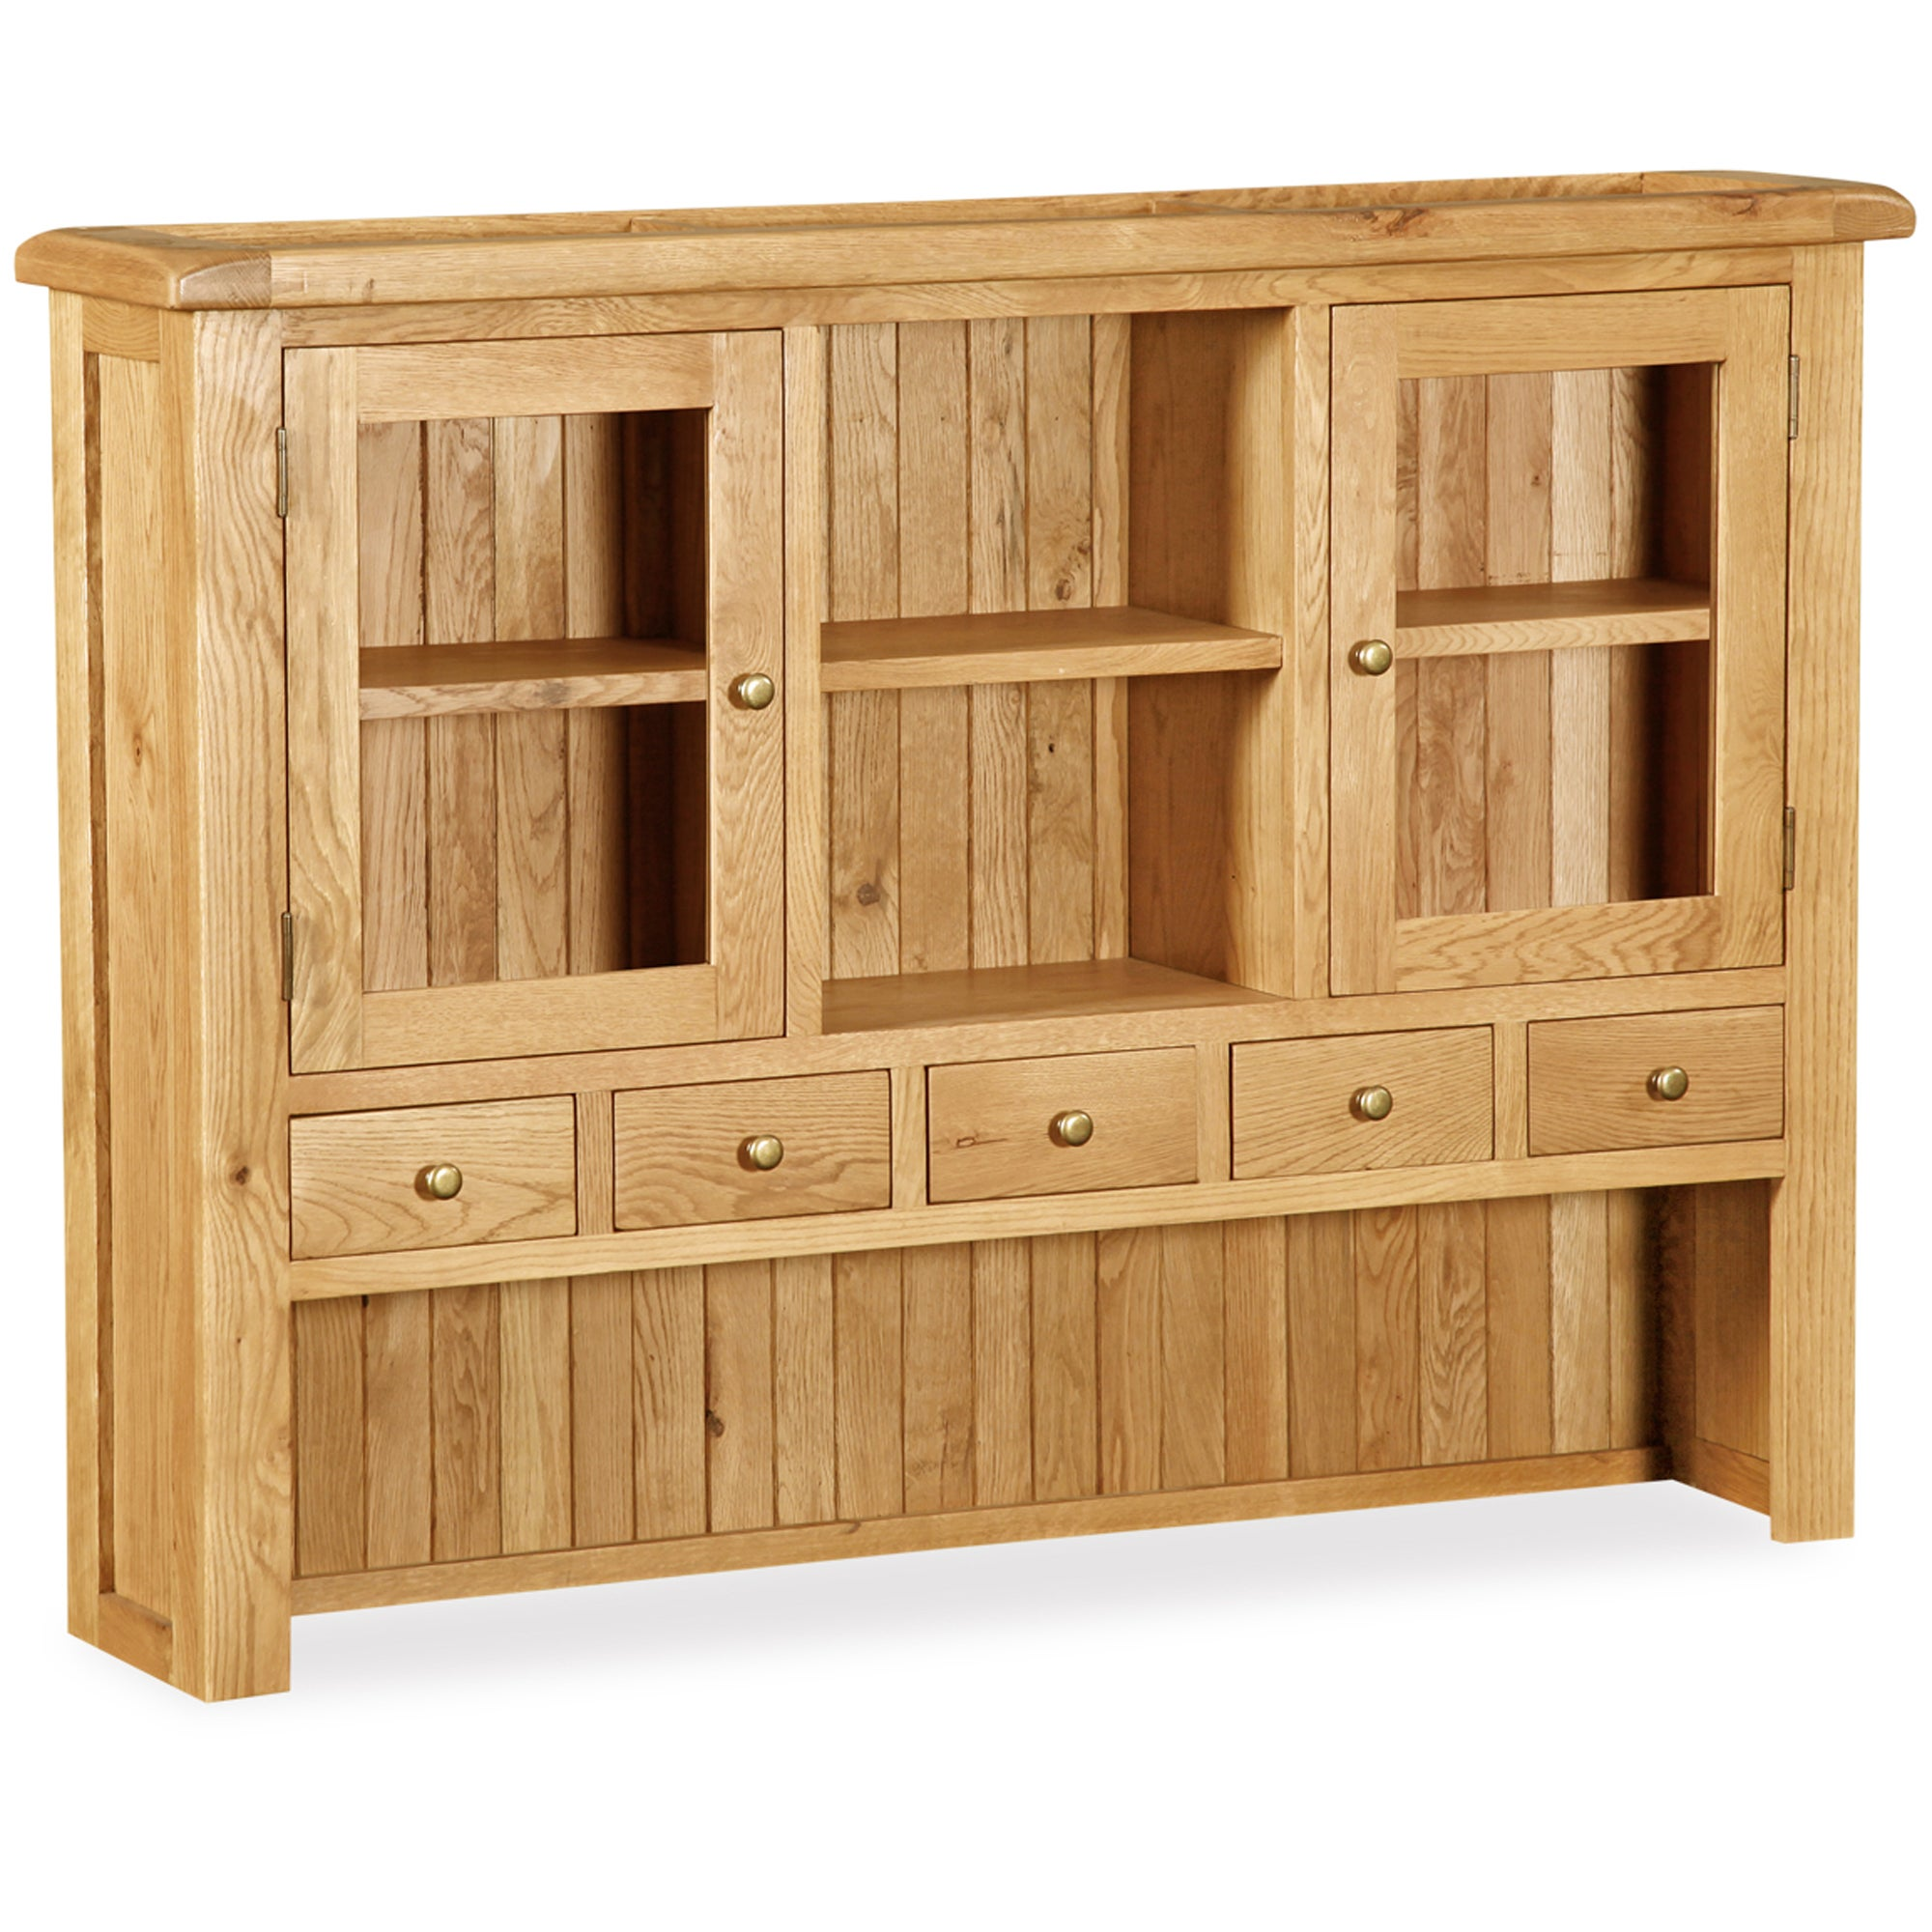 Aylesbury Oak Dresser Top